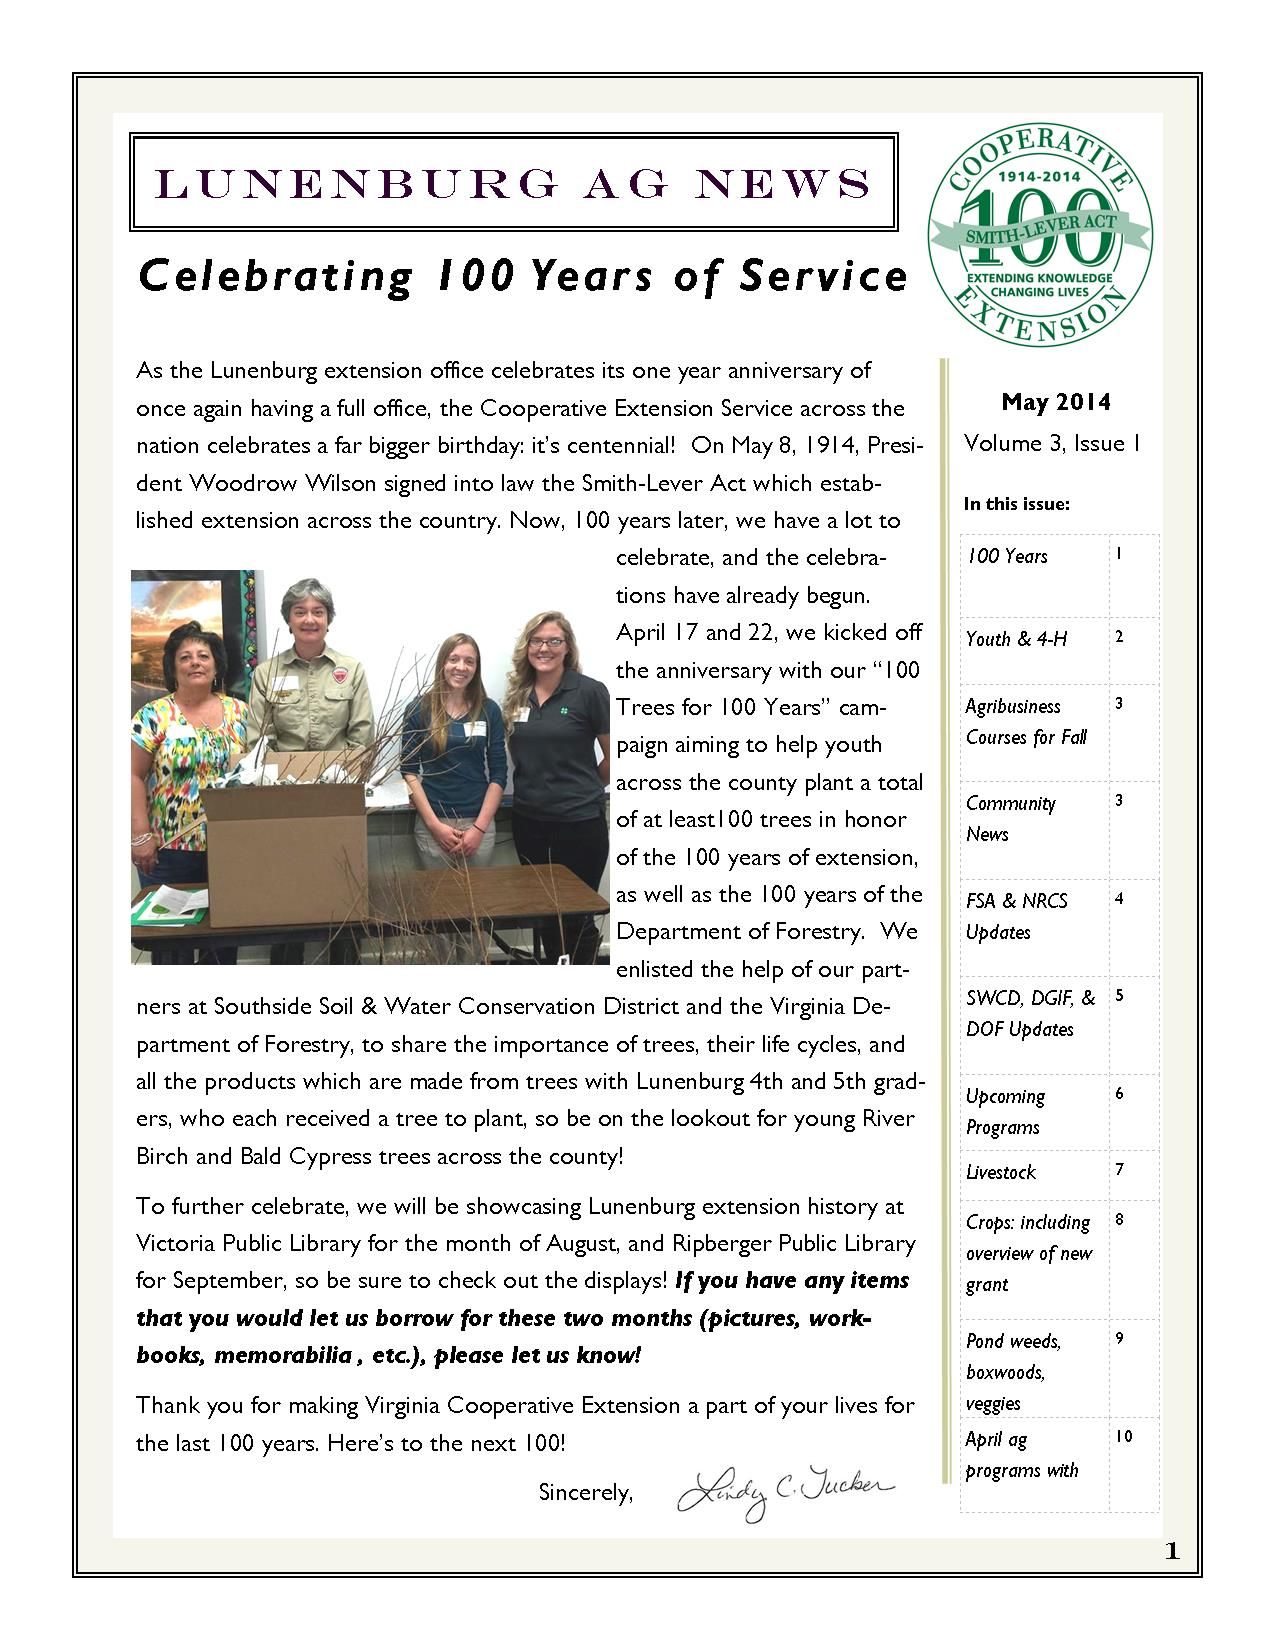 May 2014 Newsletter Page 1